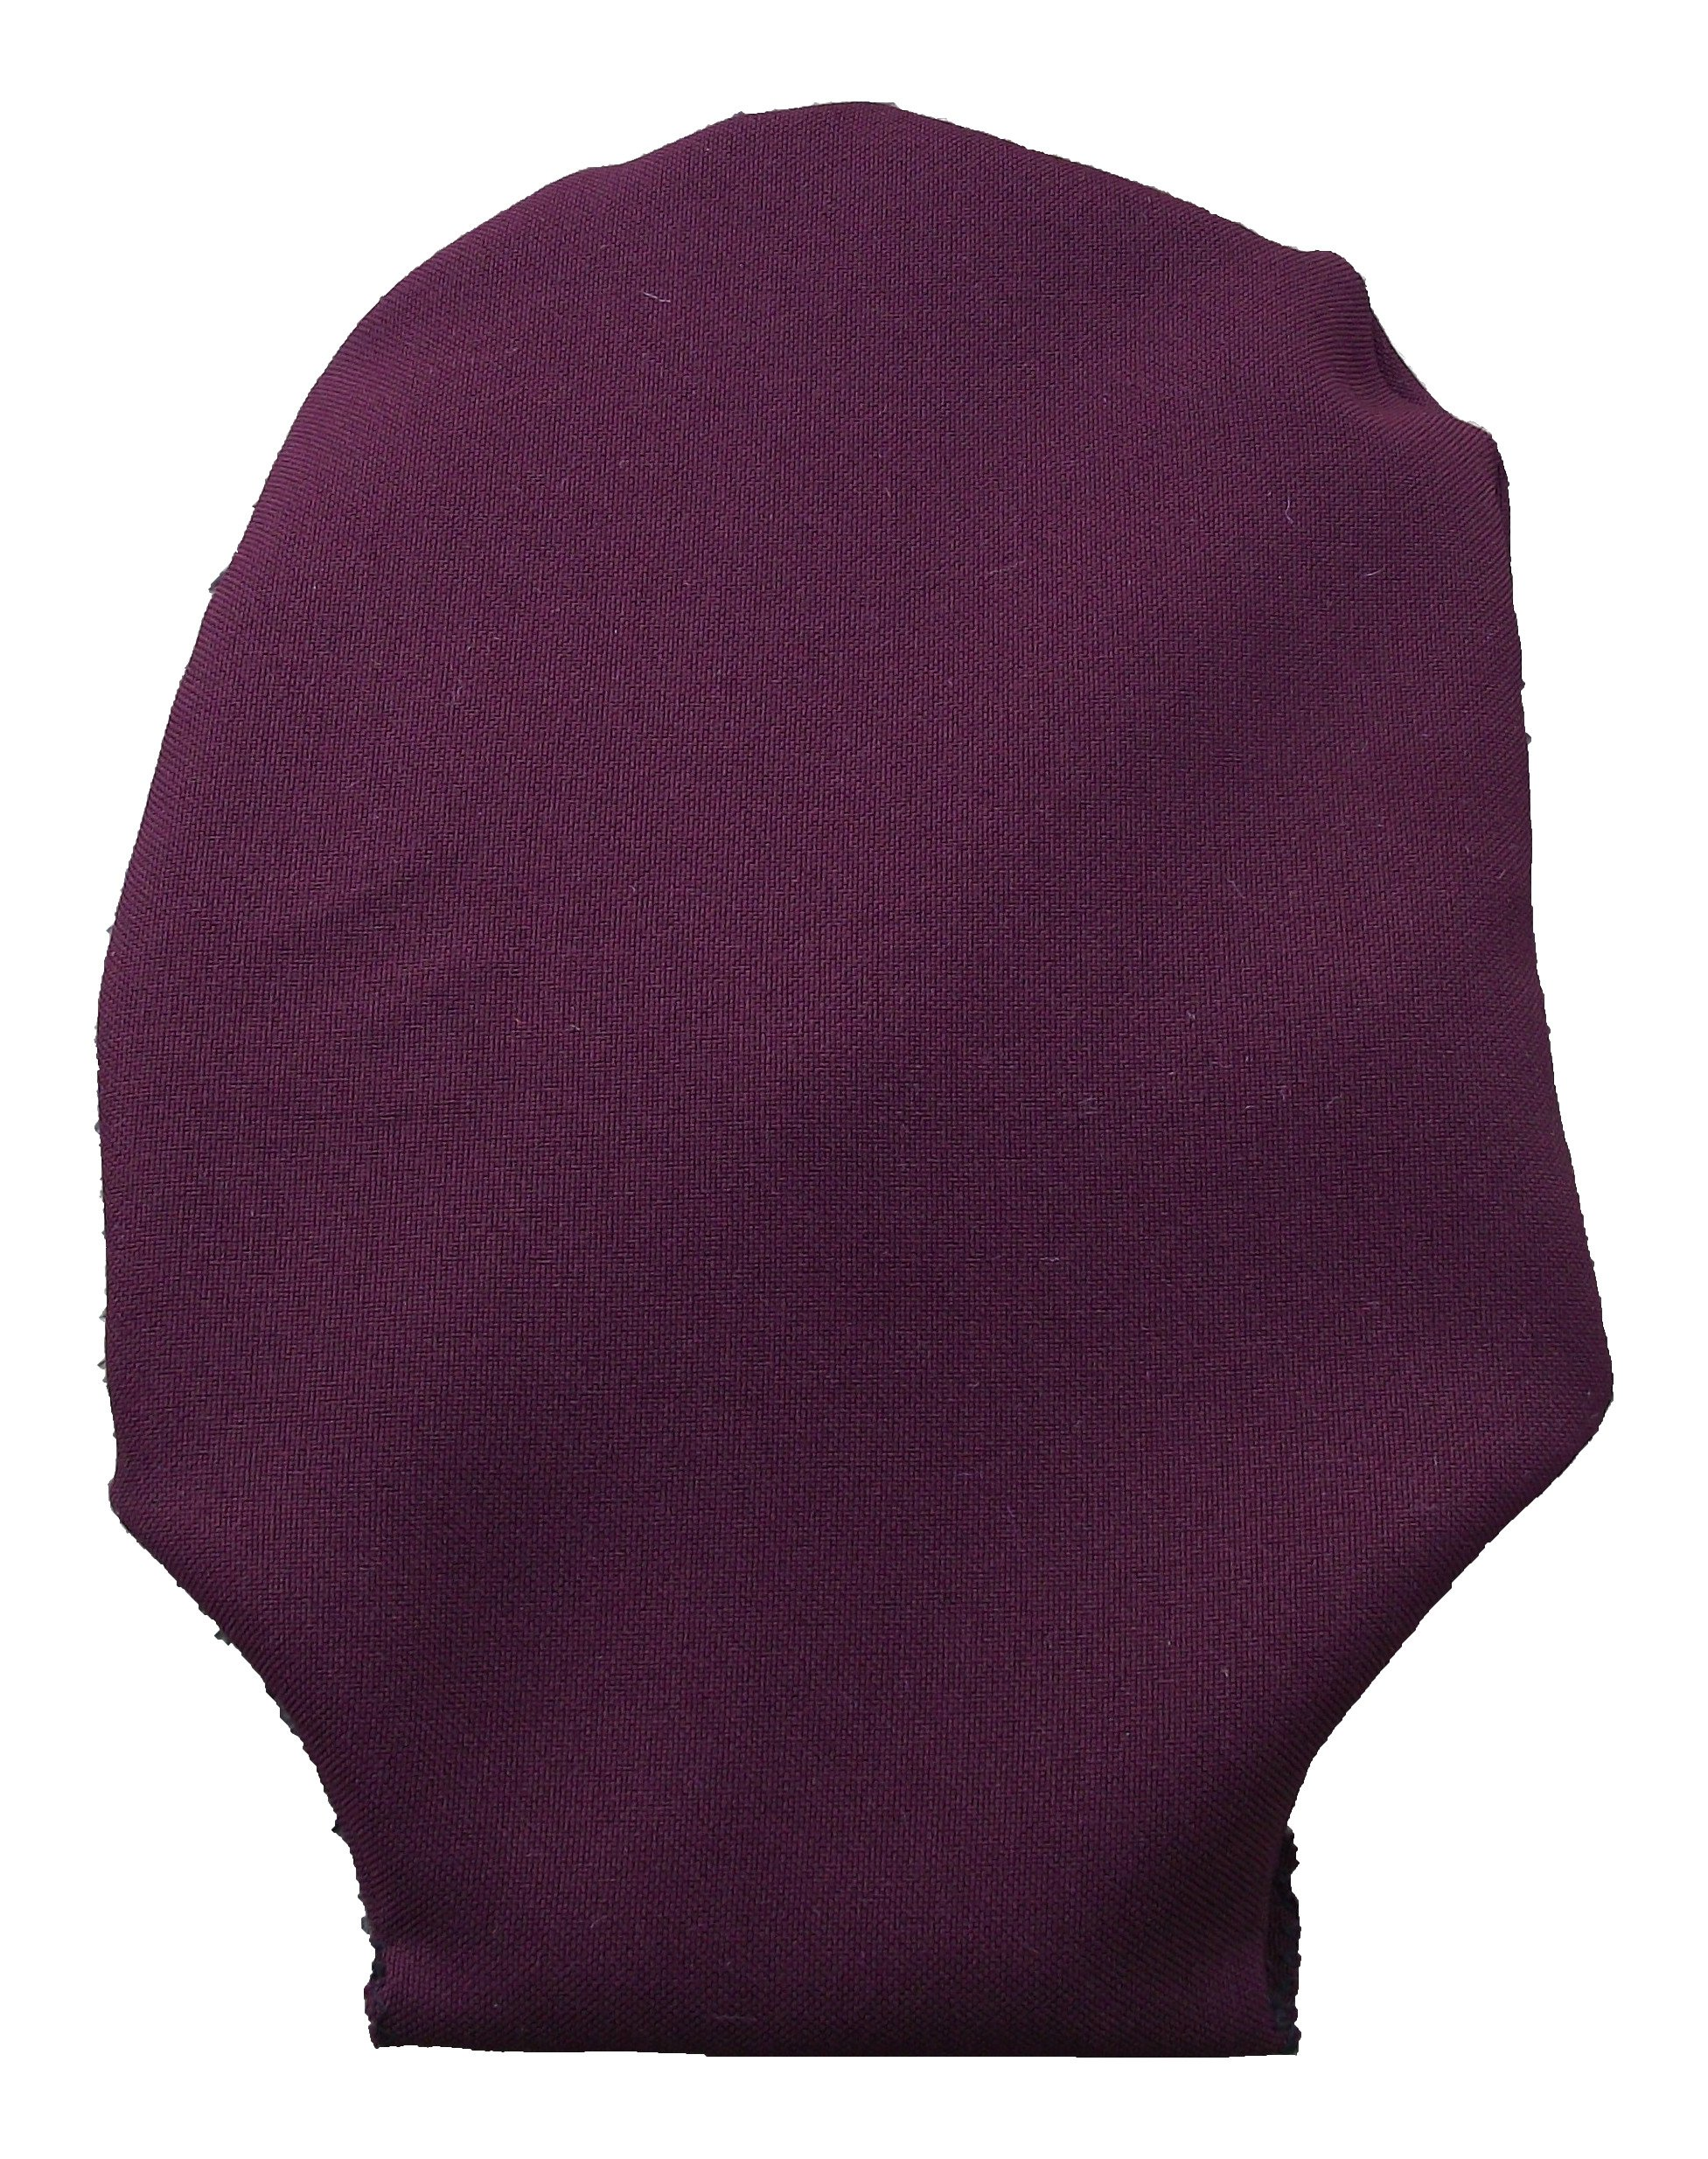 Drainable Stoma Cover Ostomy Bag Cover Bengaline Wine